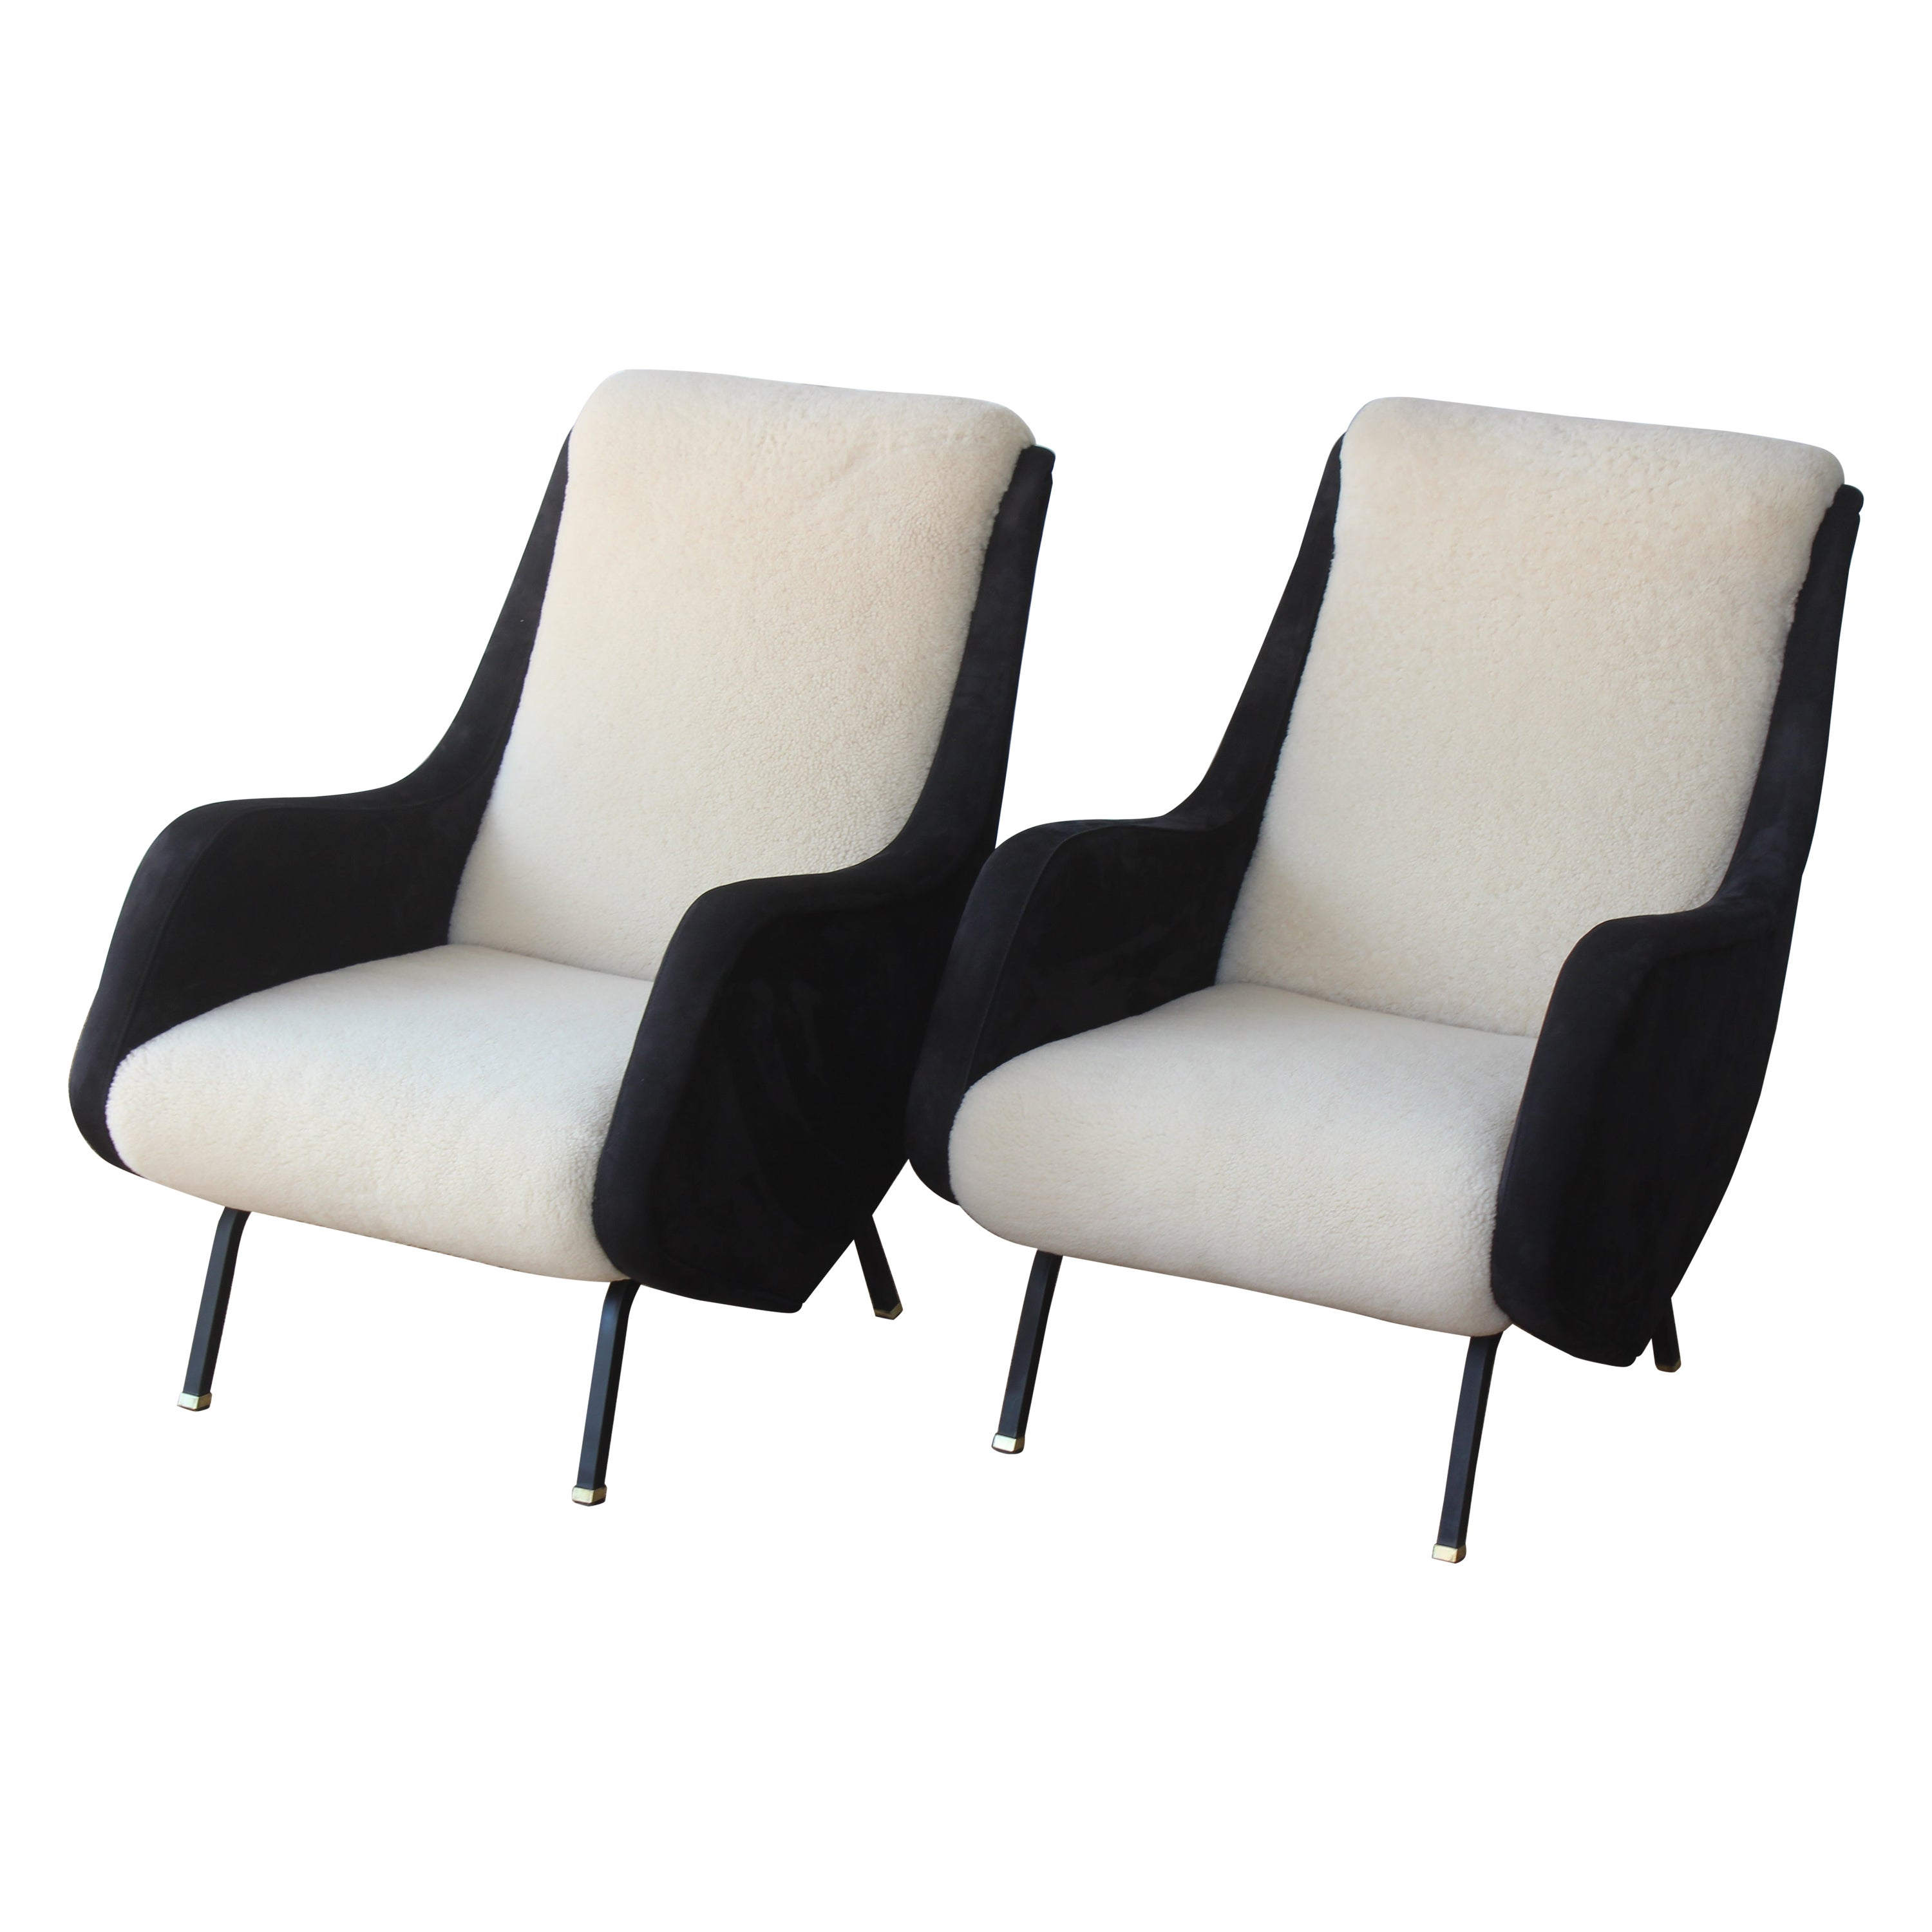 Pair of Lounge Chairs by Aldo Morbelli for ISA Bergamo, Italy, 1950s